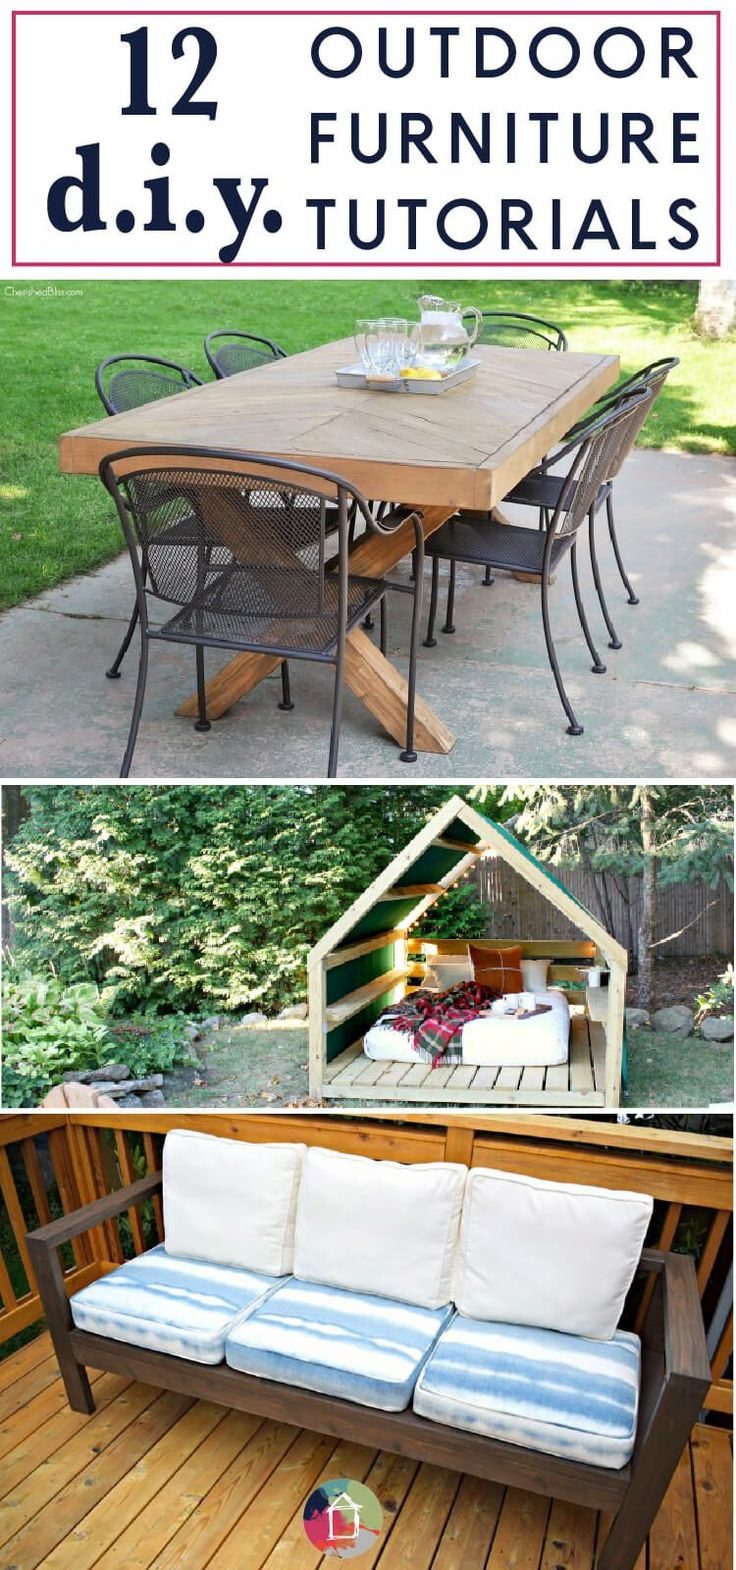 17 best ideas about diy outdoor furniture on pinterest for Outdoor furniture projects